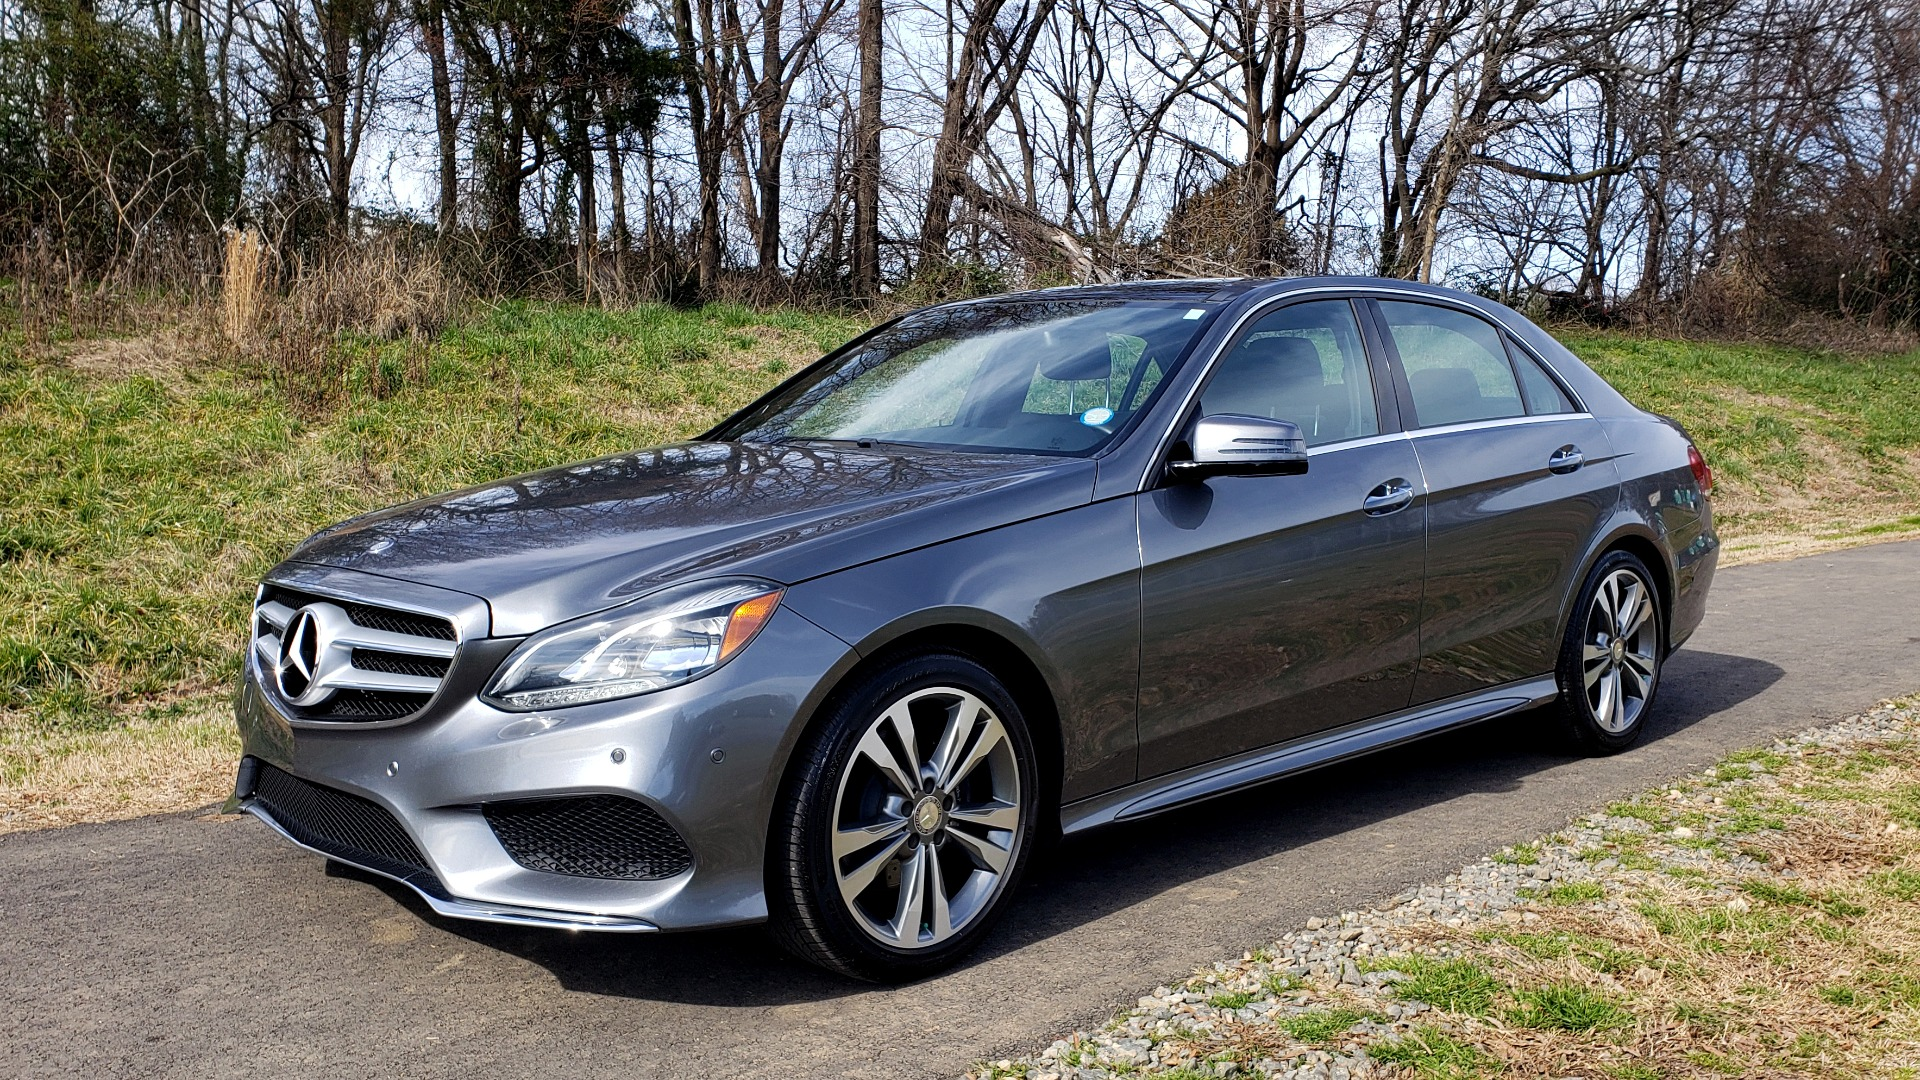 Used 2016 Mercedes-Benz E-CLASS E 350 PREM / KEYLESS-GO / NAV / SUNROOF / REARVIEW for sale Sold at Formula Imports in Charlotte NC 28227 1